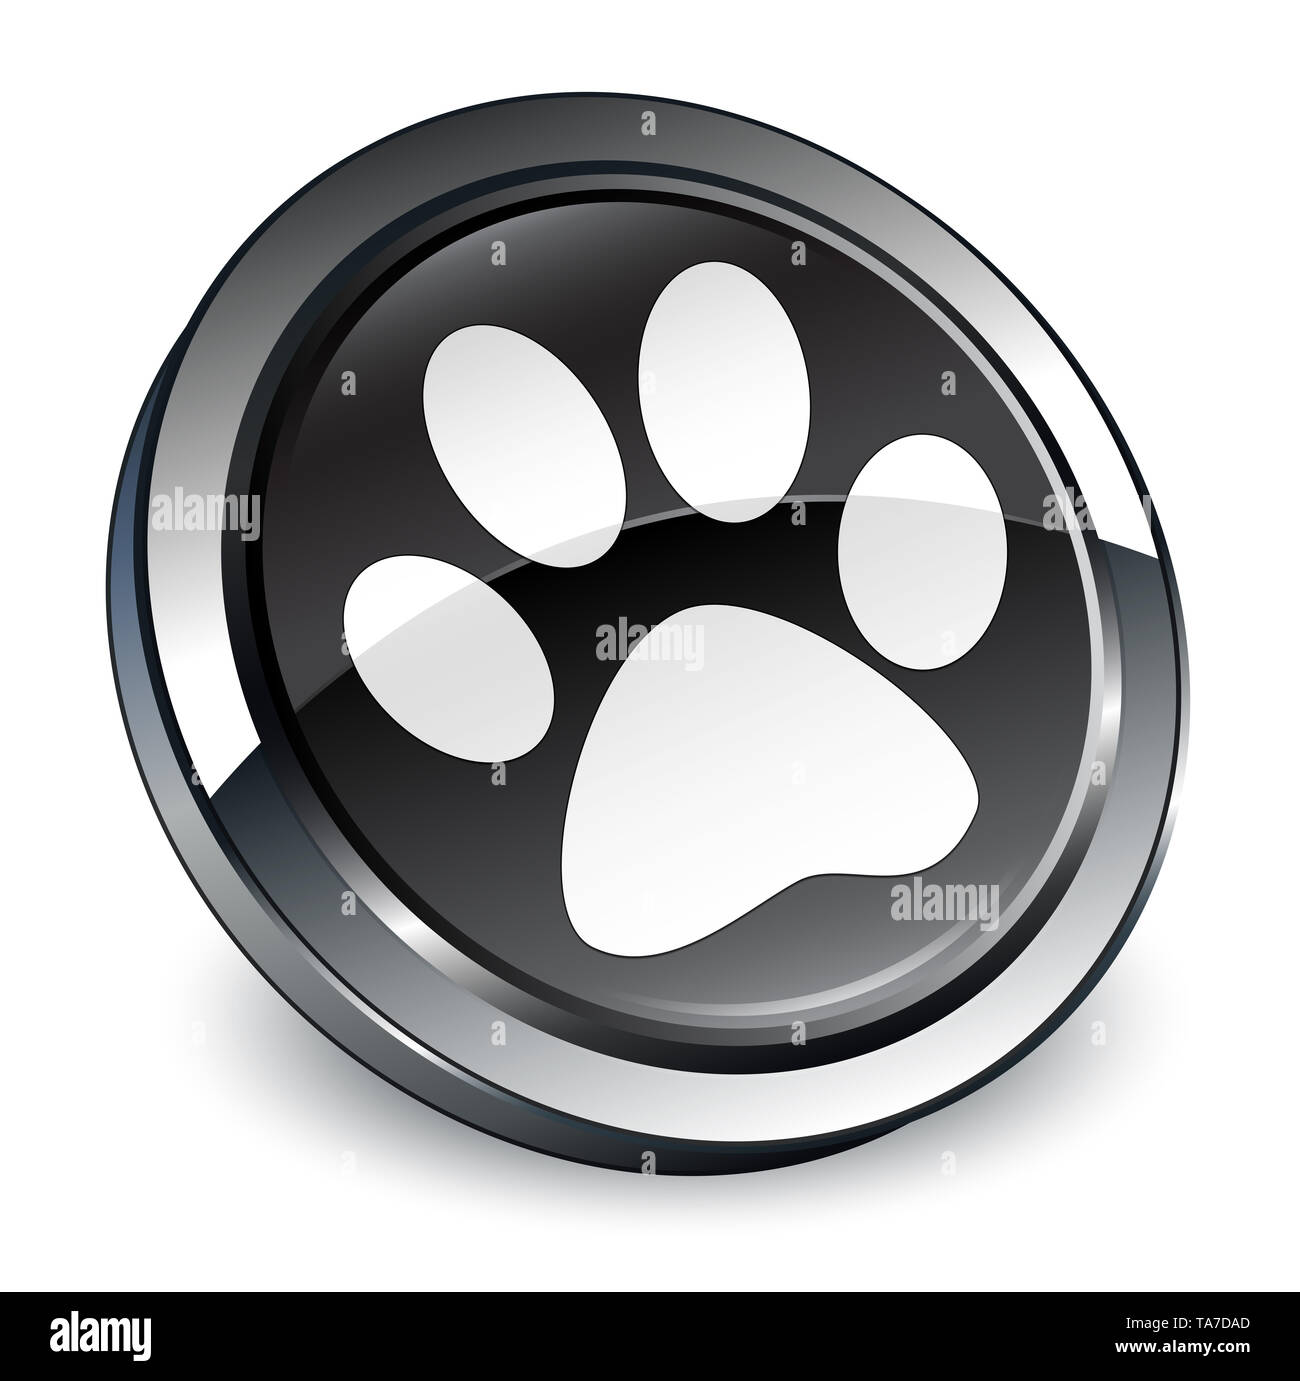 Animal footprint icon isolated on 3d black round button abstract illustration - Stock Image